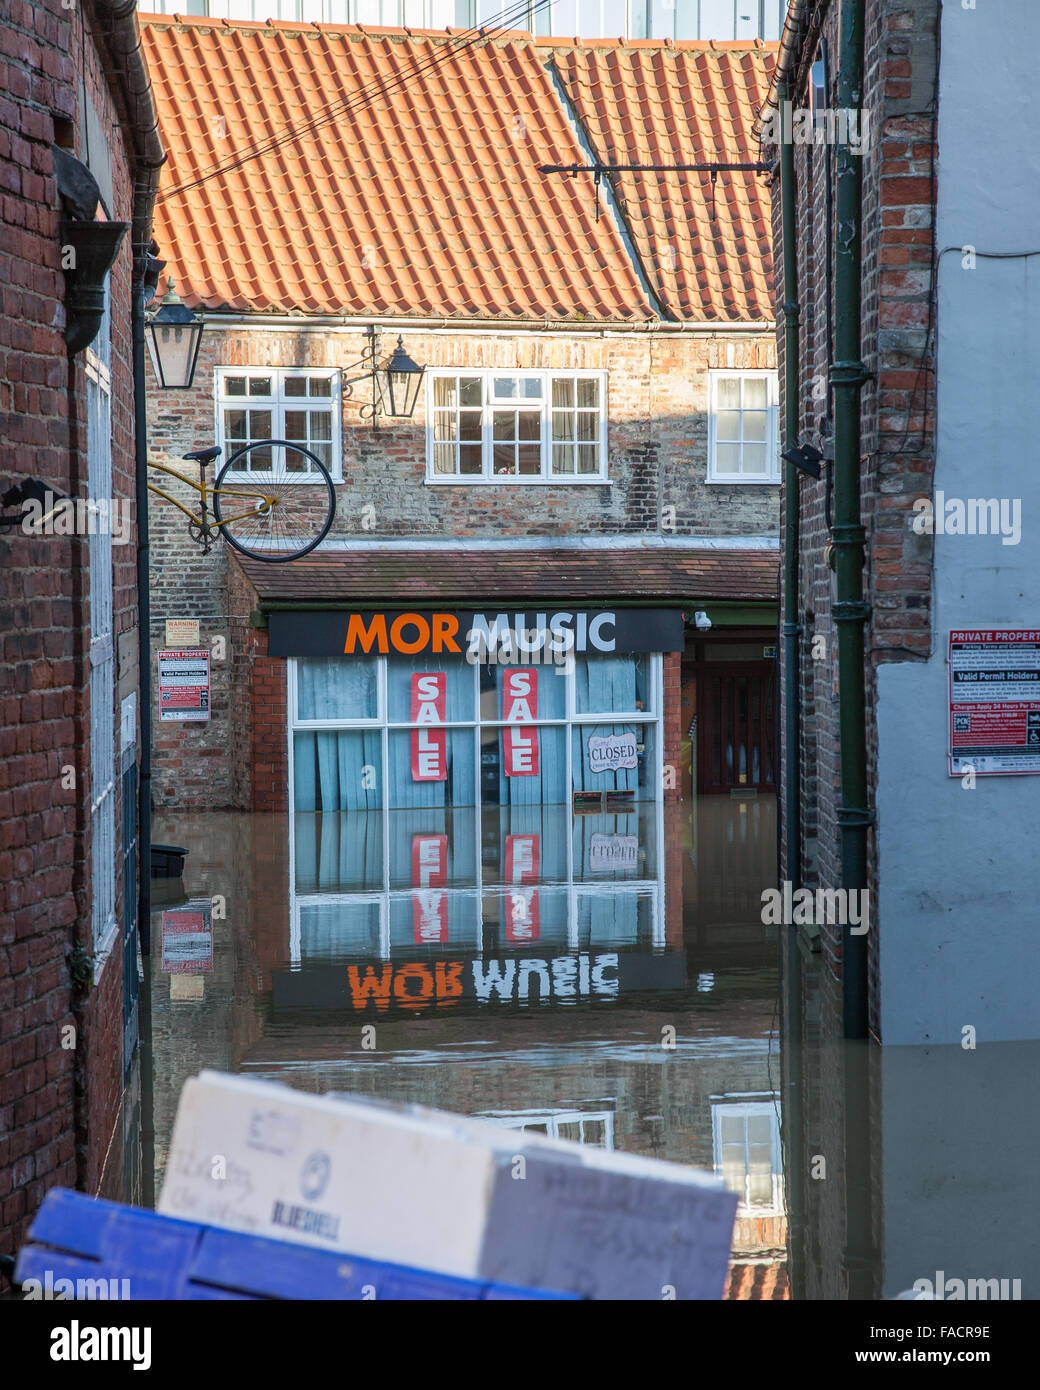 York floods, York, UK. Mor Music's shop underwater in Fossgate, York. - Stock Image